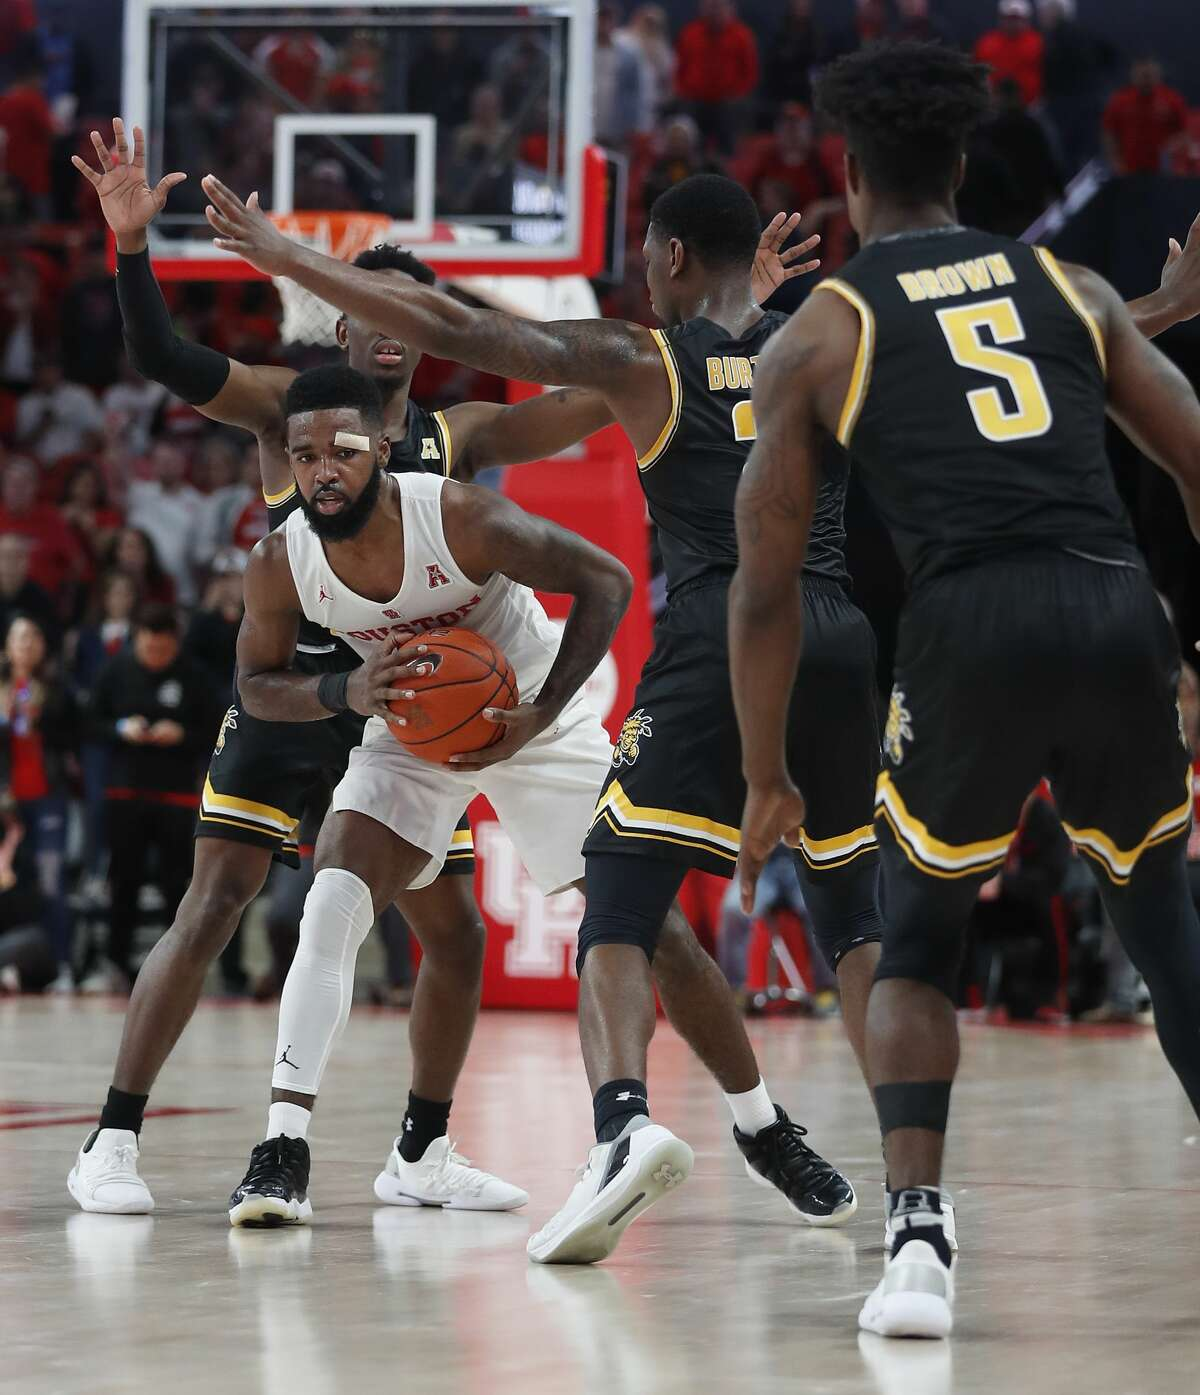 Houston Cougars guard Corey Davis Jr. (5) with a bandage on his head looks to pass the ball during the second half of an NCAA Men's basketball game at Fertitta Center, Saturday, Jan. 12, 2019, in Houston. Houston won the game against Wichita State Shockers 79-70.